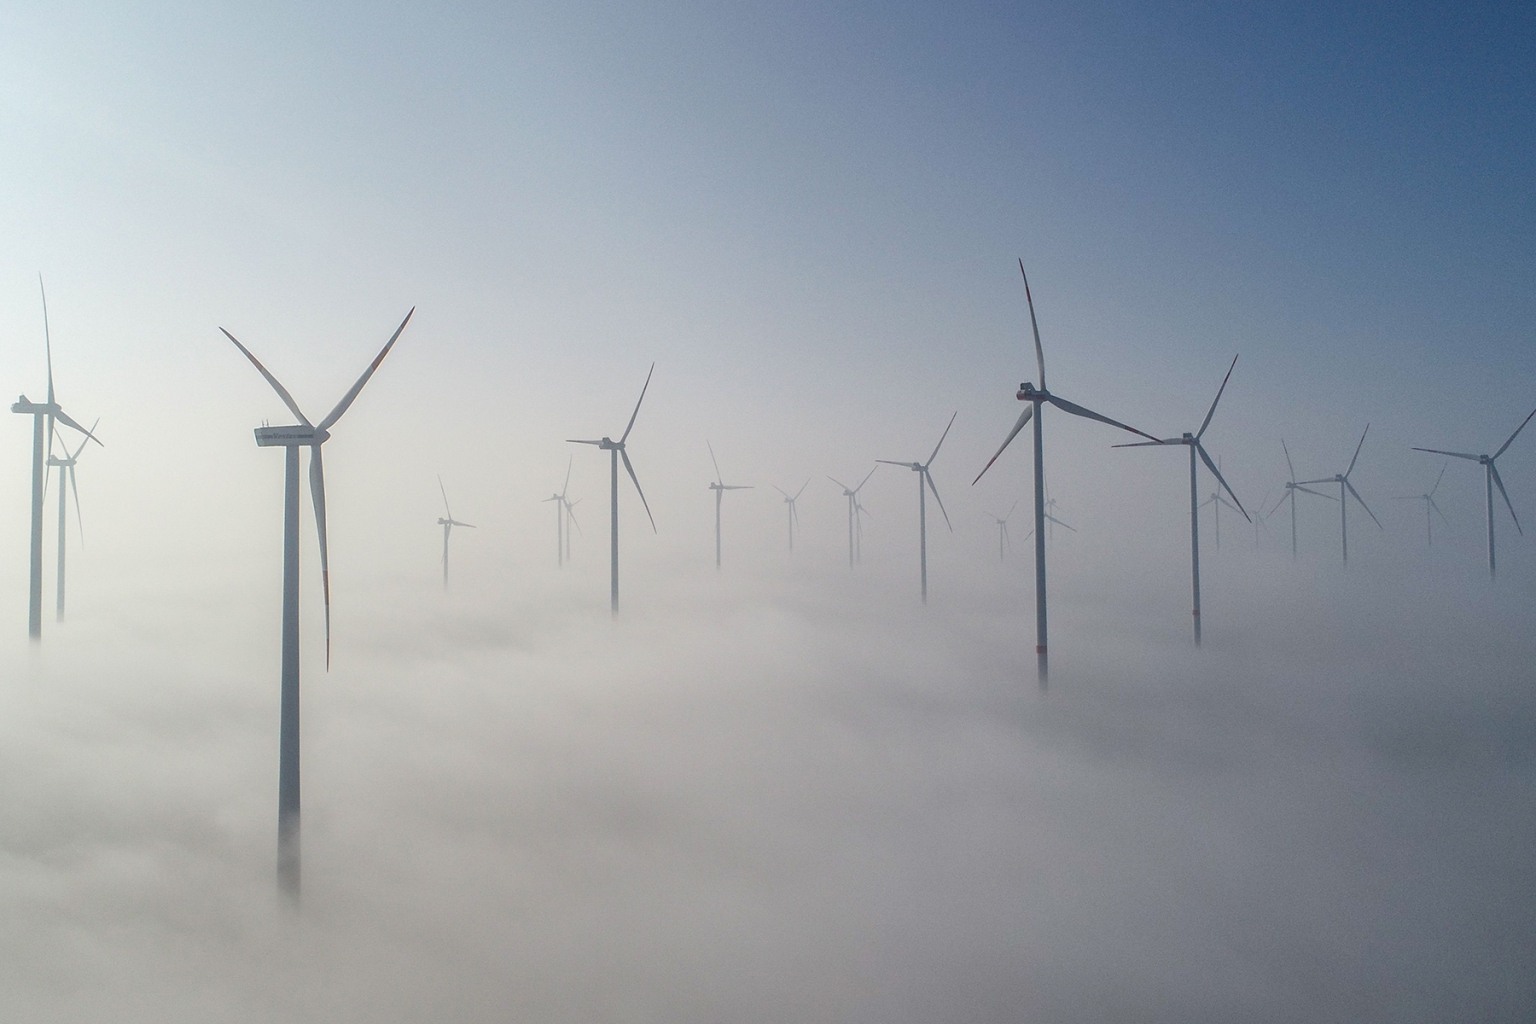 Wind turbines poke above the morning fog at a wind farm in Jacobsdorf, Germany, on Feb. 27. PATRICK PLEUL/AFP/Getty Images